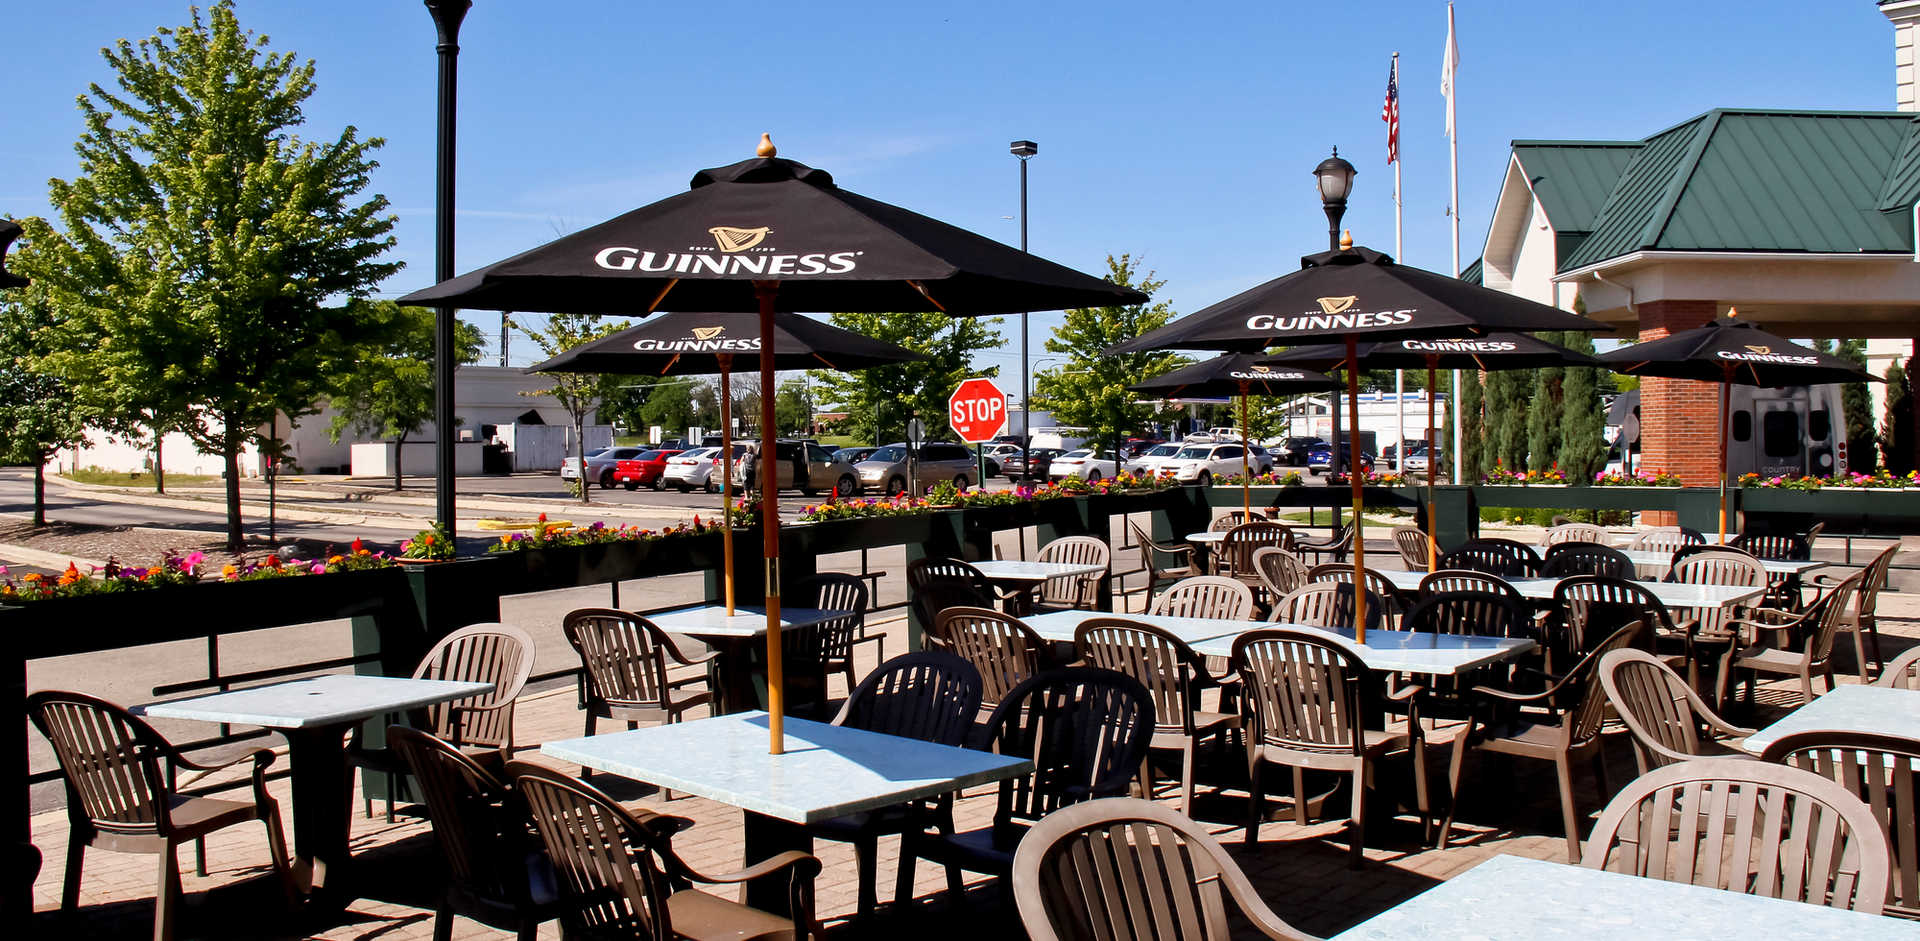 Real Time Sports Bar and Grill Patio view 5